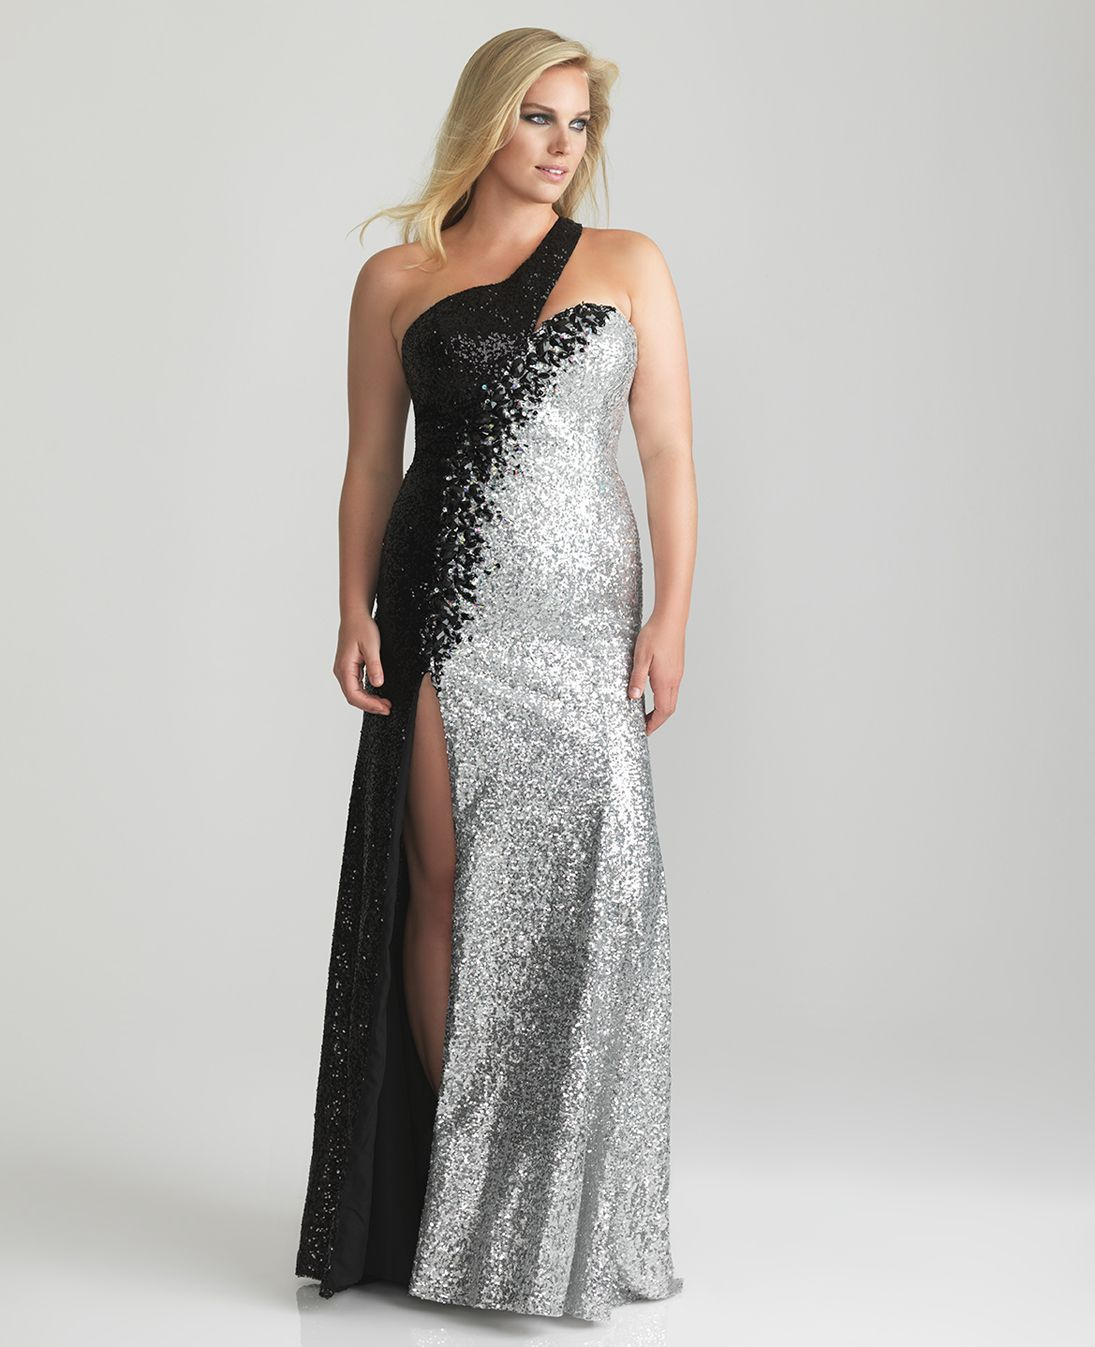 d8fbd7e7ea9cf Black   Silver Sequin Sweetheart One Shoulder Plus Size Dress - Unique  Vintage - Cocktail